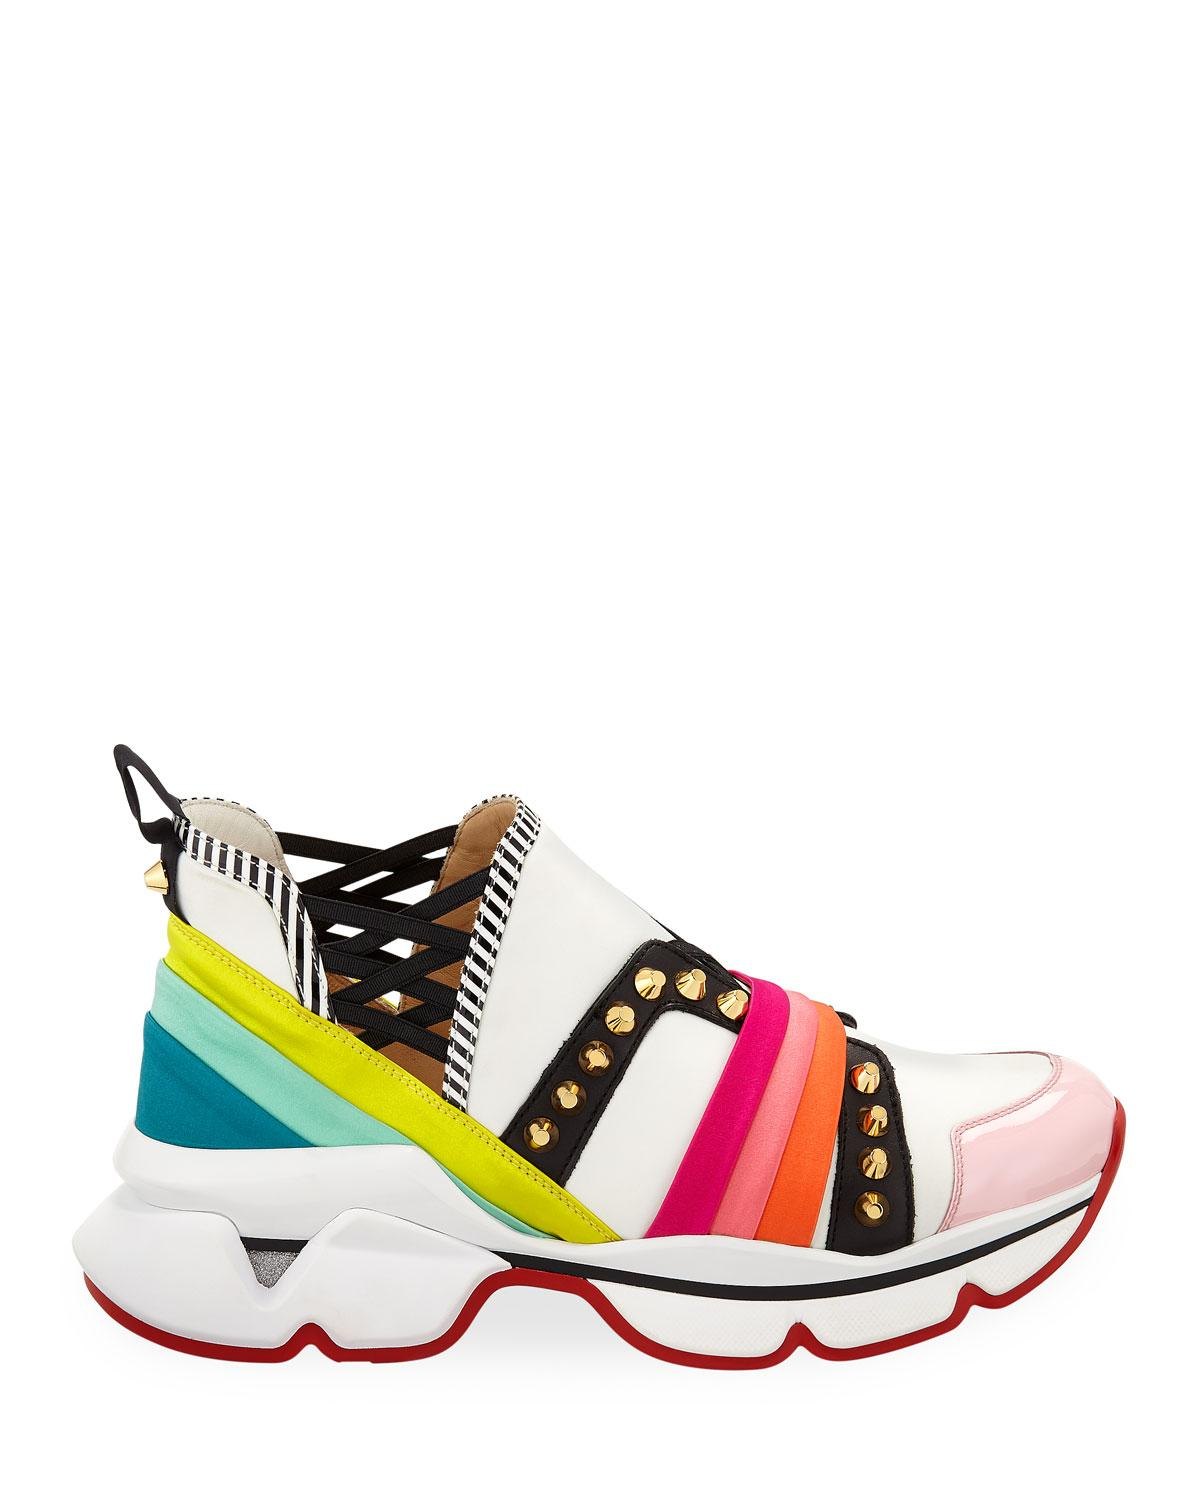 78c6d222290 Lyst - Christian Louboutin 123 Run Rainbow Red Sole Sneakers in Red